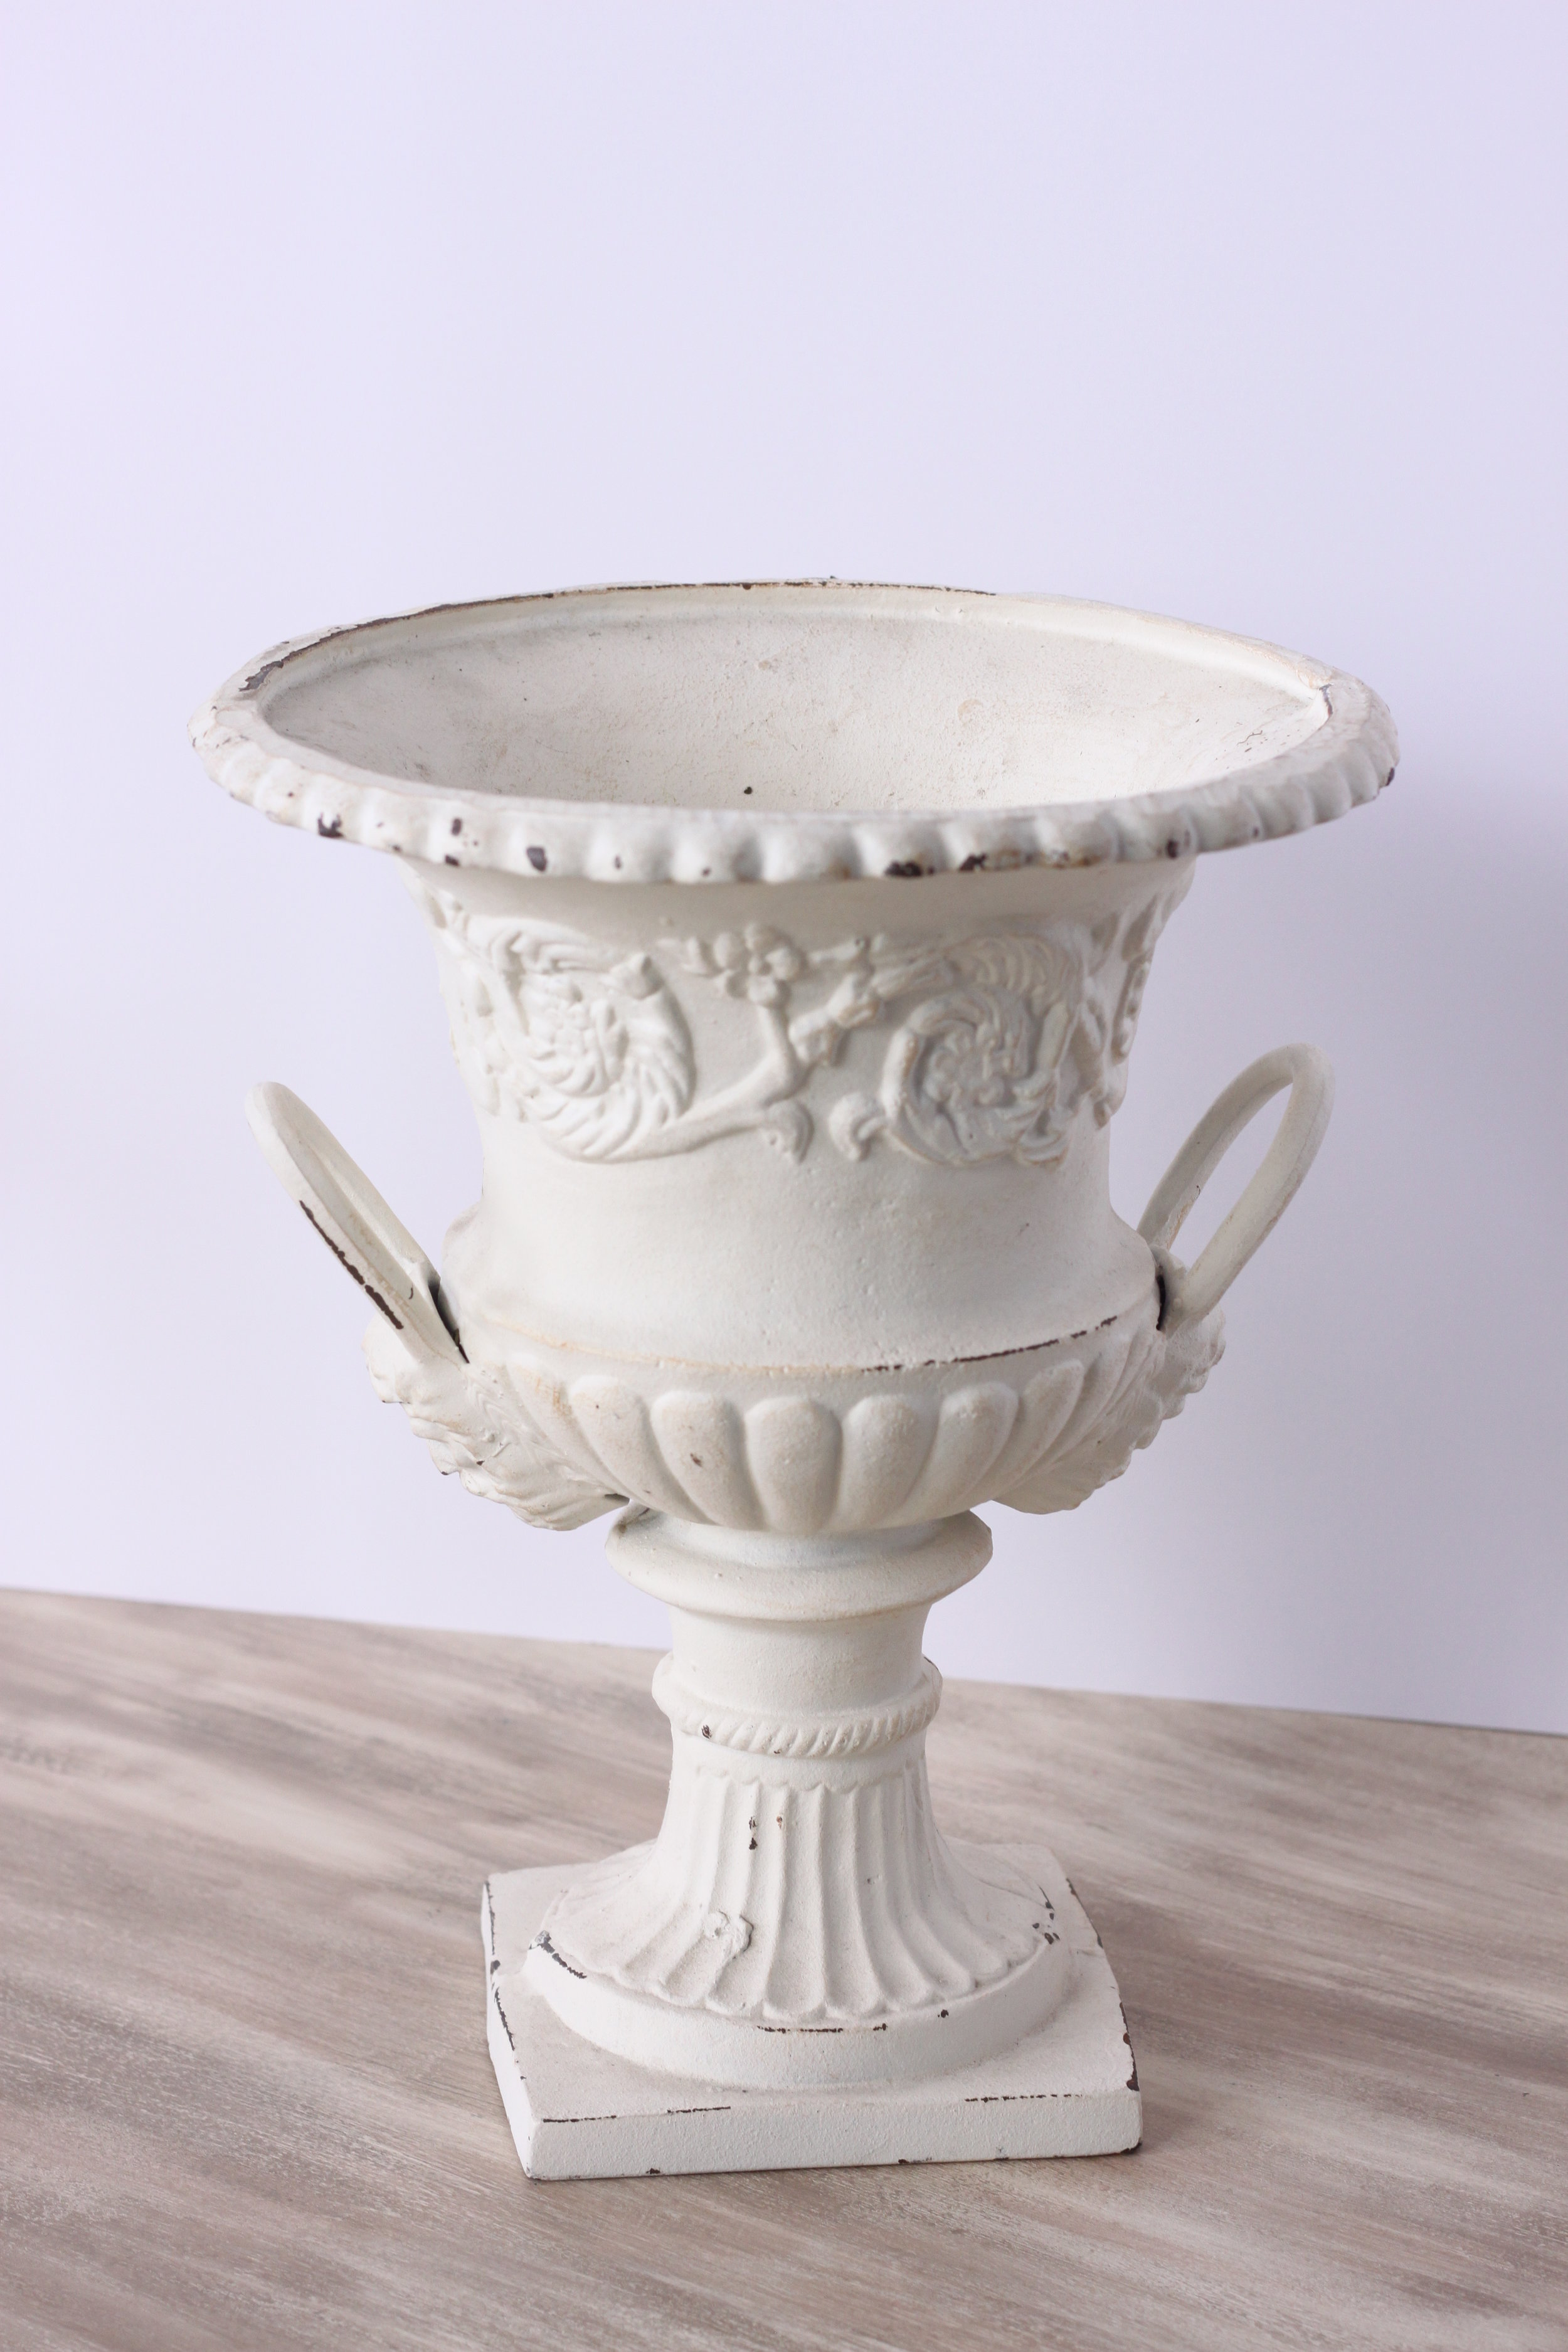 Copy of White Cast Iron Vessel $12/ea.